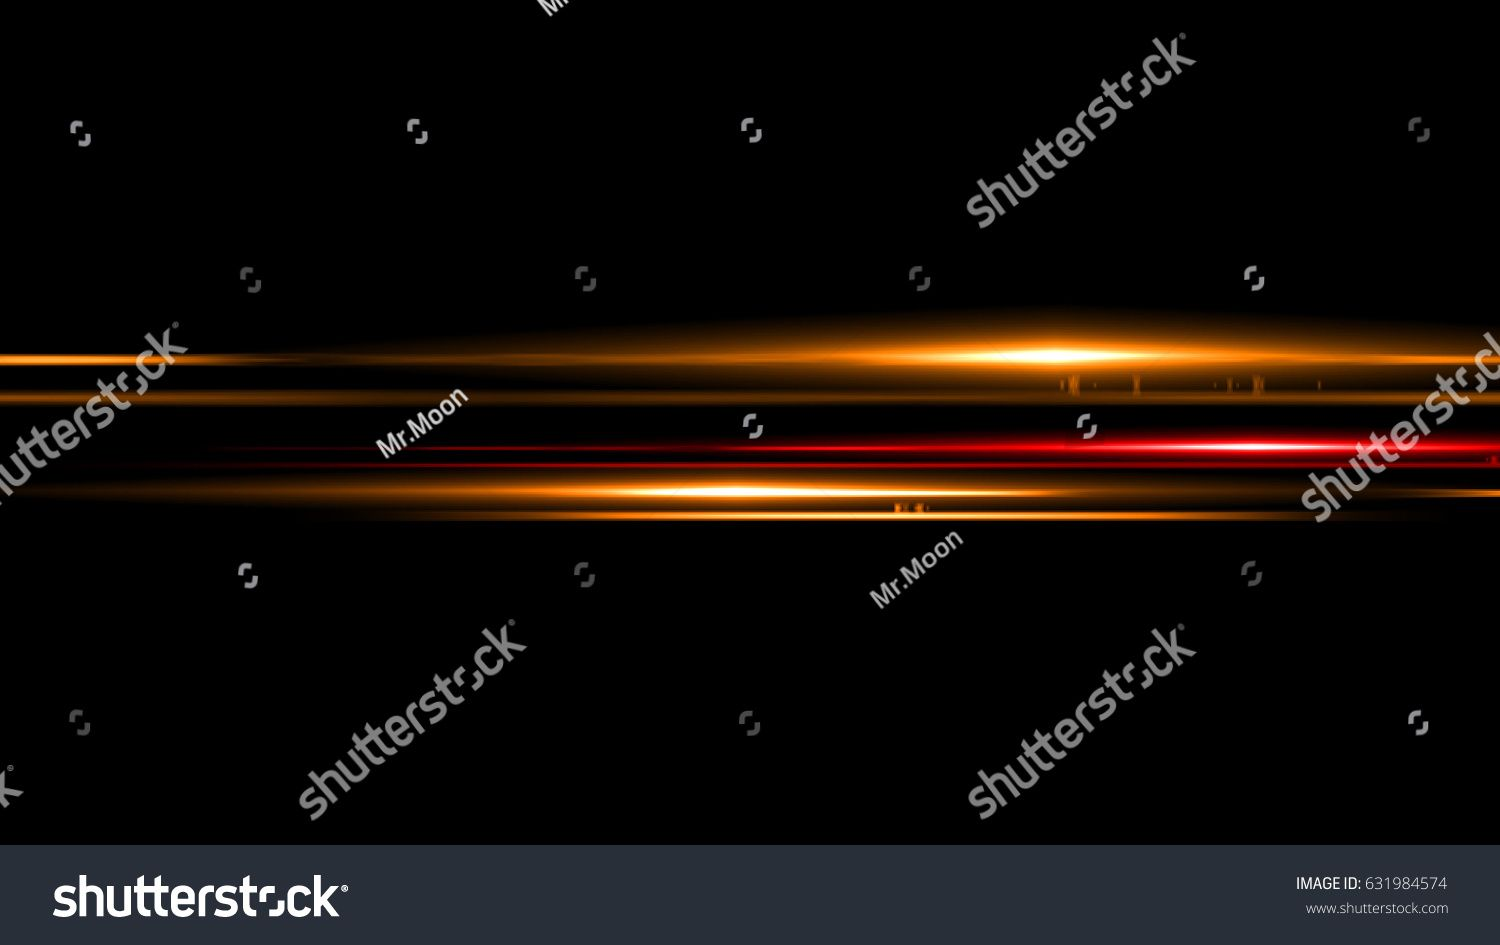 Beautiful Light Flares Glowing Streaks On Dark Background Images, Photos, Reviews